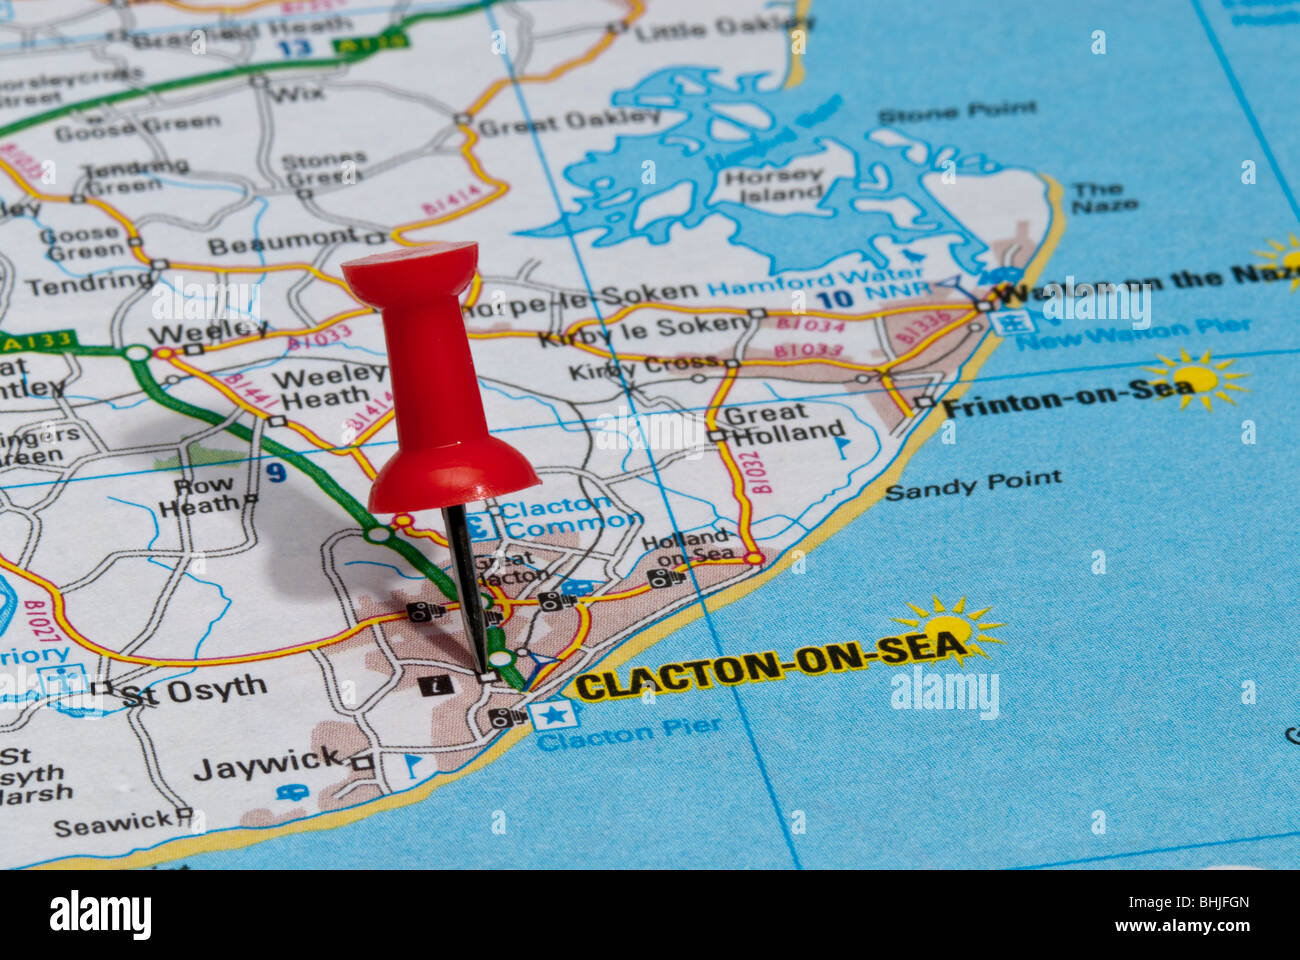 Clacton On Sea Map red map pin in road map pointing to city of Clacton on sea Stock